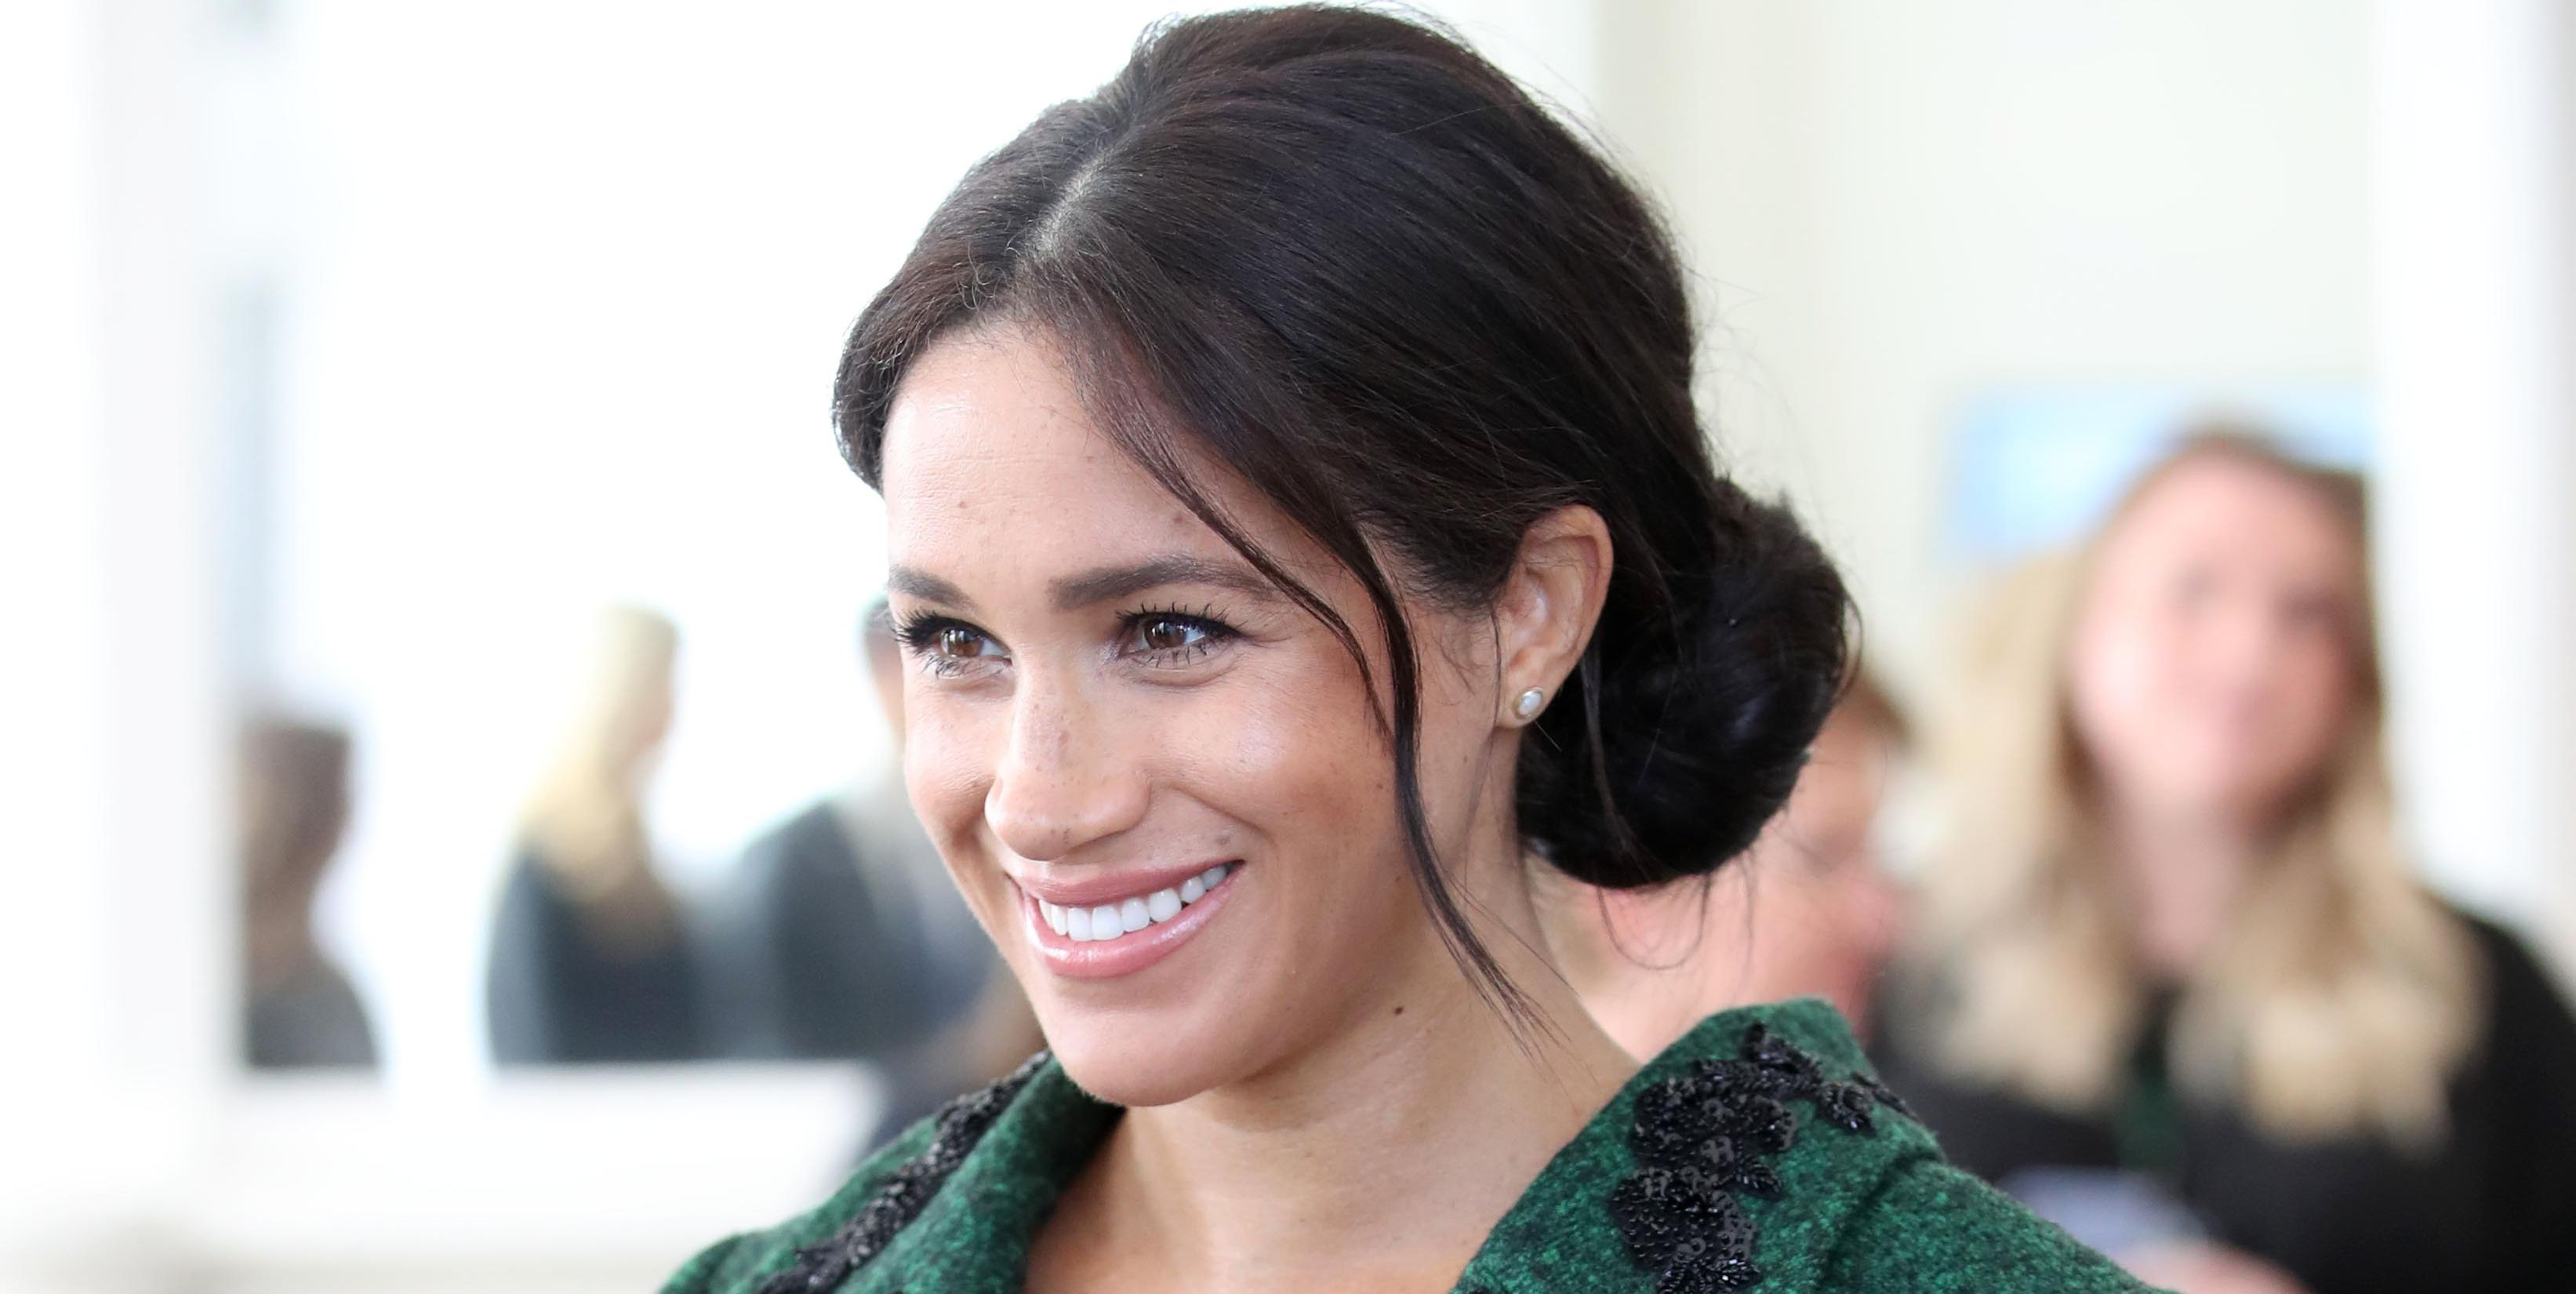 Why we won't see any more pictures of a pregnant Meghan Markle